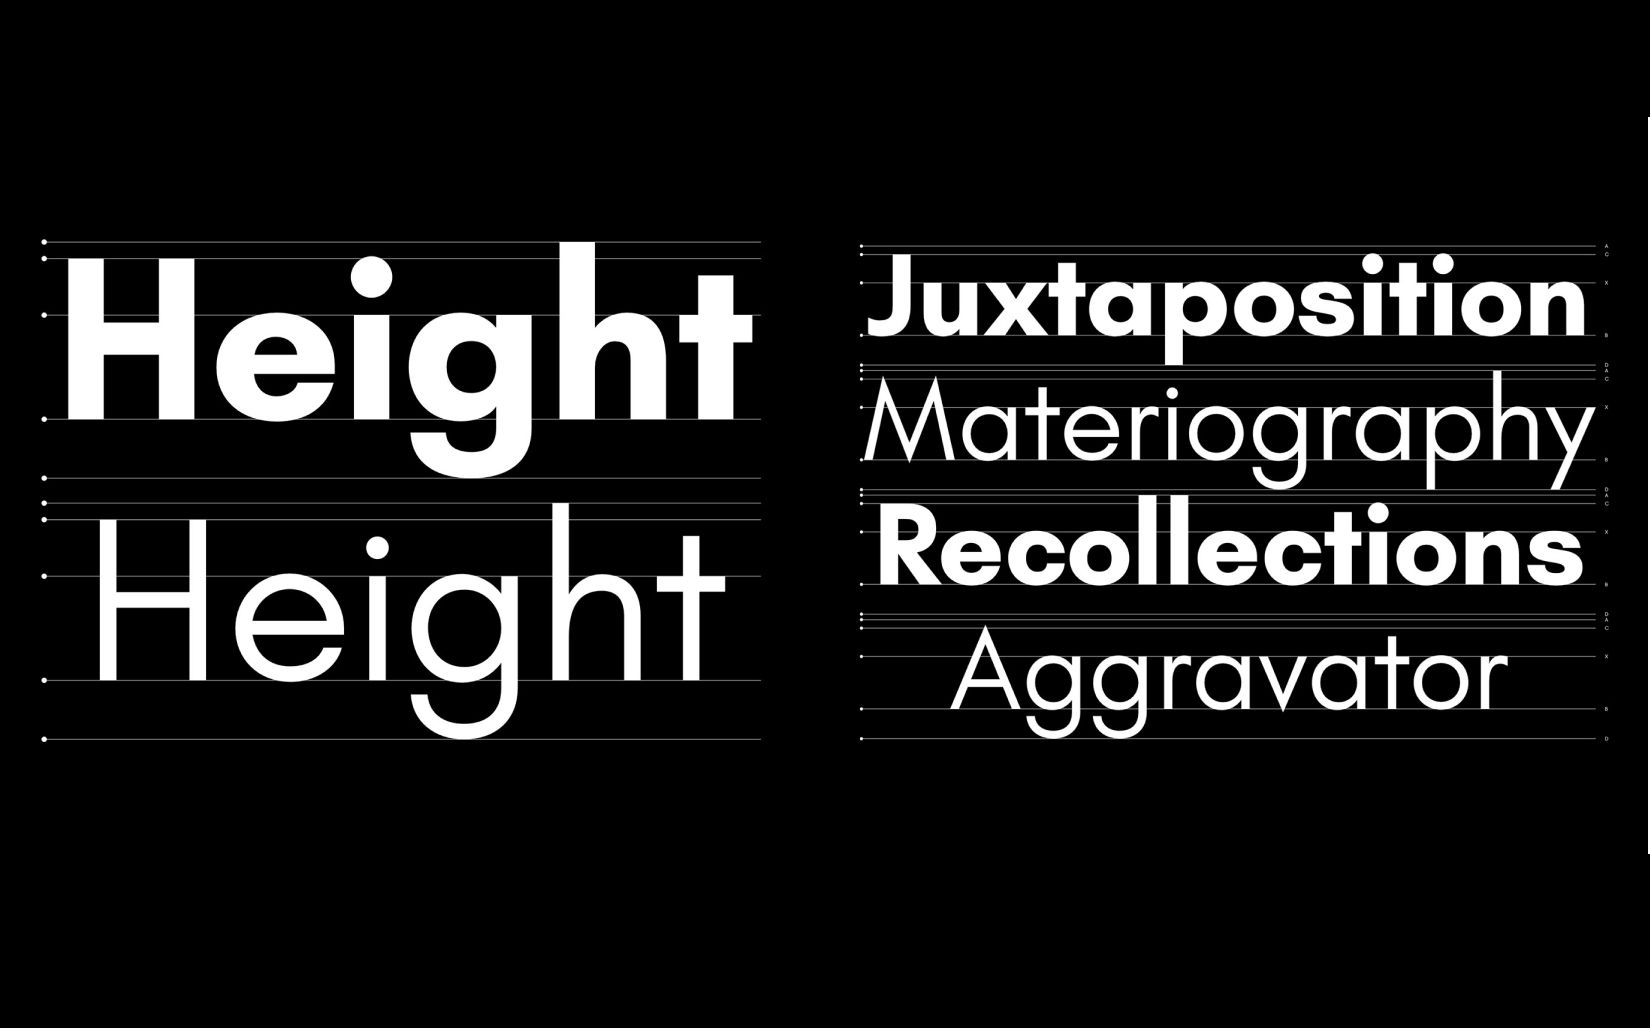 Best Free Sans Serif Fonts Glacial Indifference